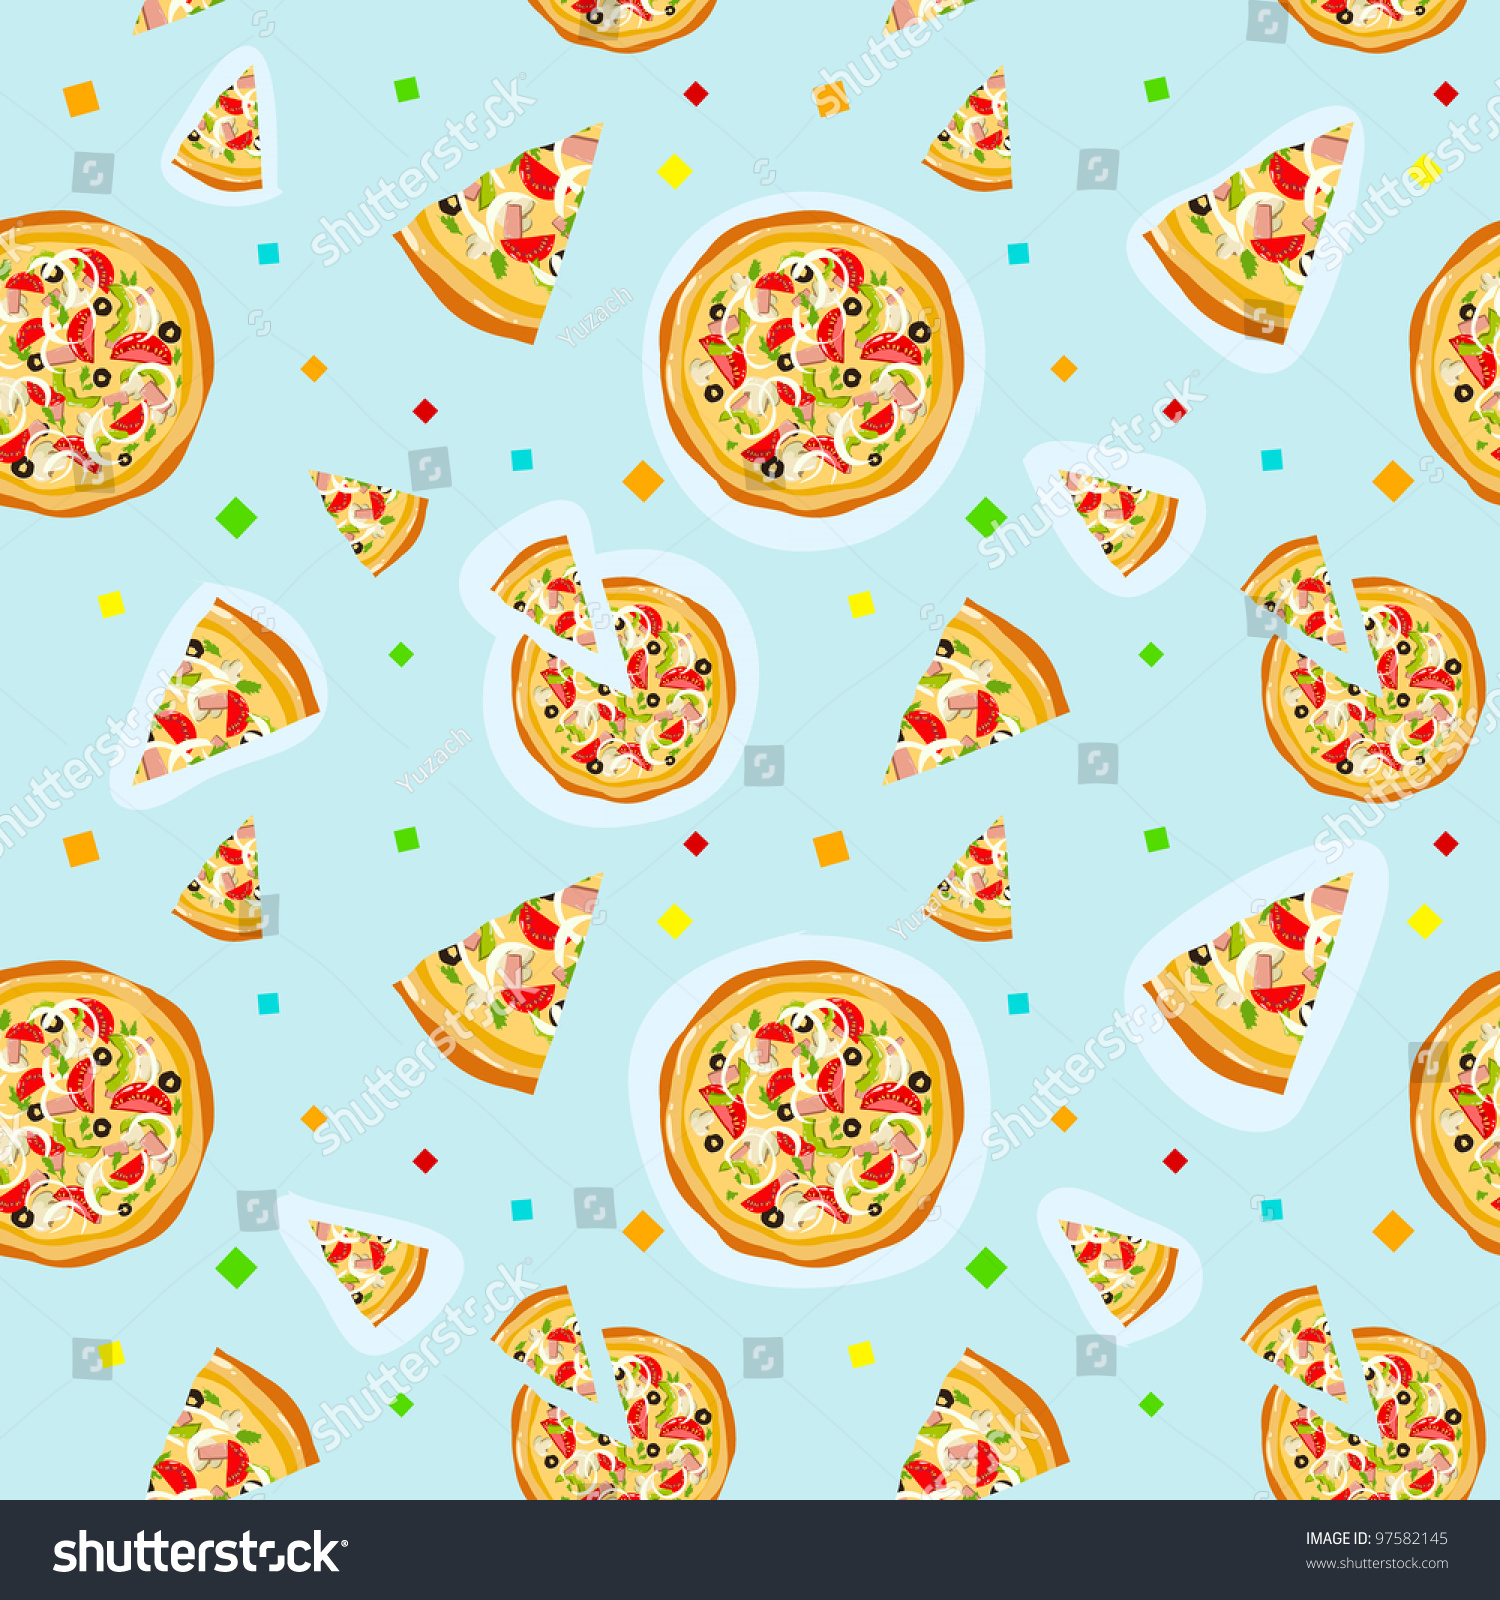 repeating pizza background - photo #8